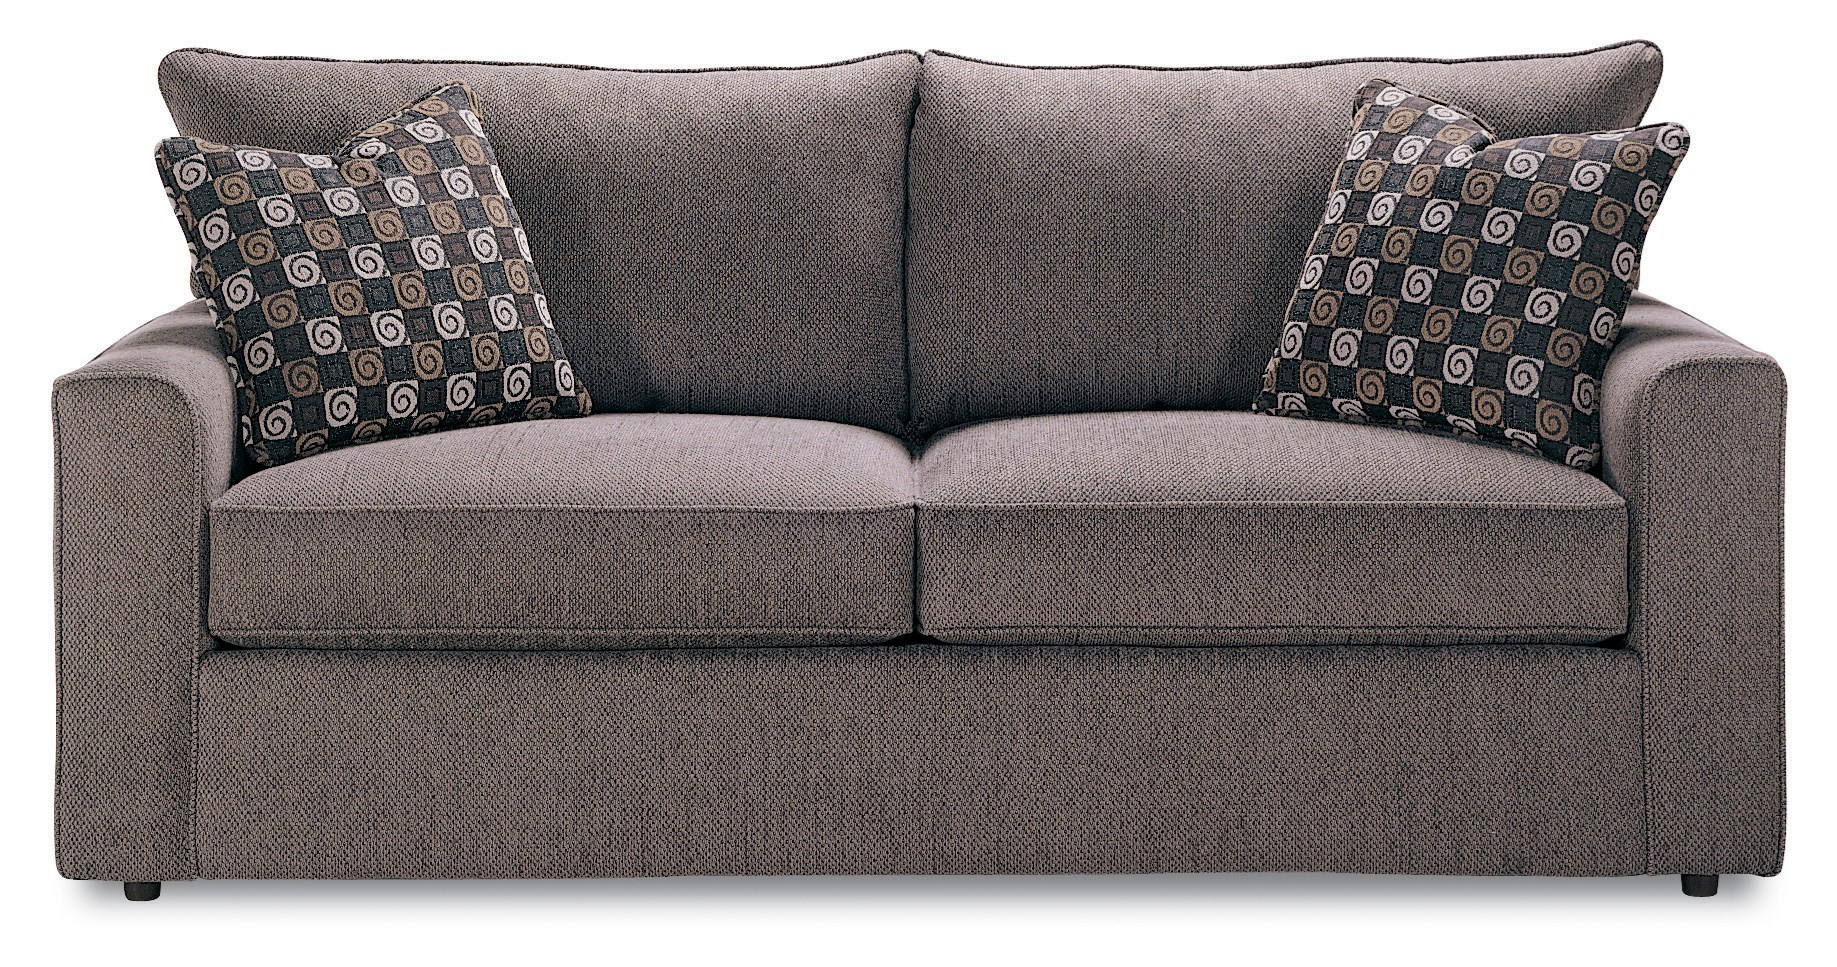 queen sofa beds clearance throw pillows covers for size sleepers easycrafts4fun page 6